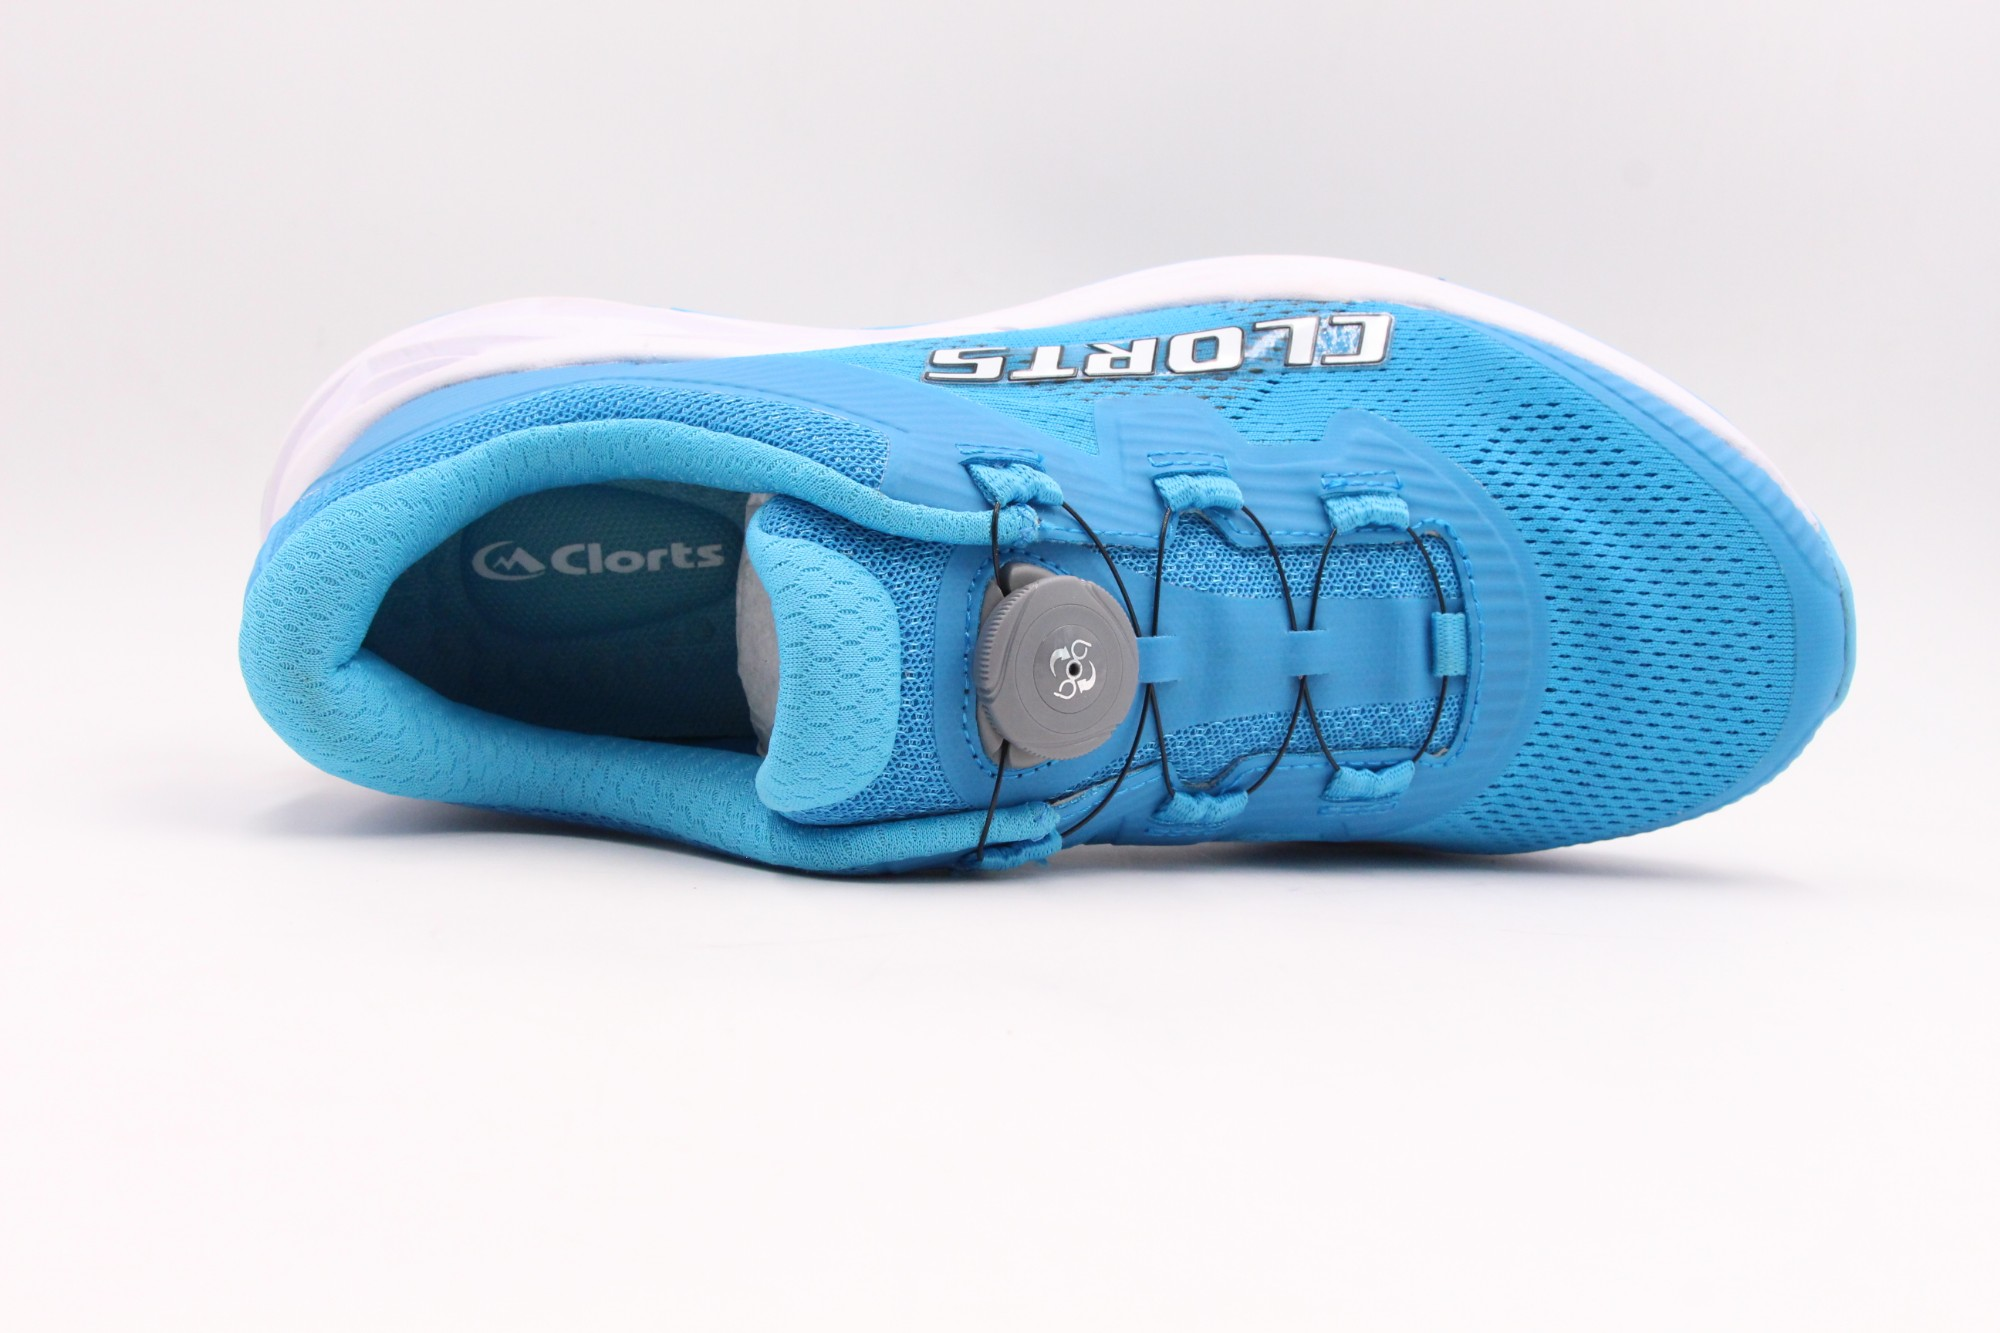 Membeli Clorts Womens Mens Running Work-out Shoes Blue,Clorts Womens Mens Running Work-out Shoes Blue Harga,Clorts Womens Mens Running Work-out Shoes Blue Jenama,Clorts Womens Mens Running Work-out Shoes Blue  Pengeluar,Clorts Womens Mens Running Work-out Shoes Blue Petikan,Clorts Womens Mens Running Work-out Shoes Blue syarikat,